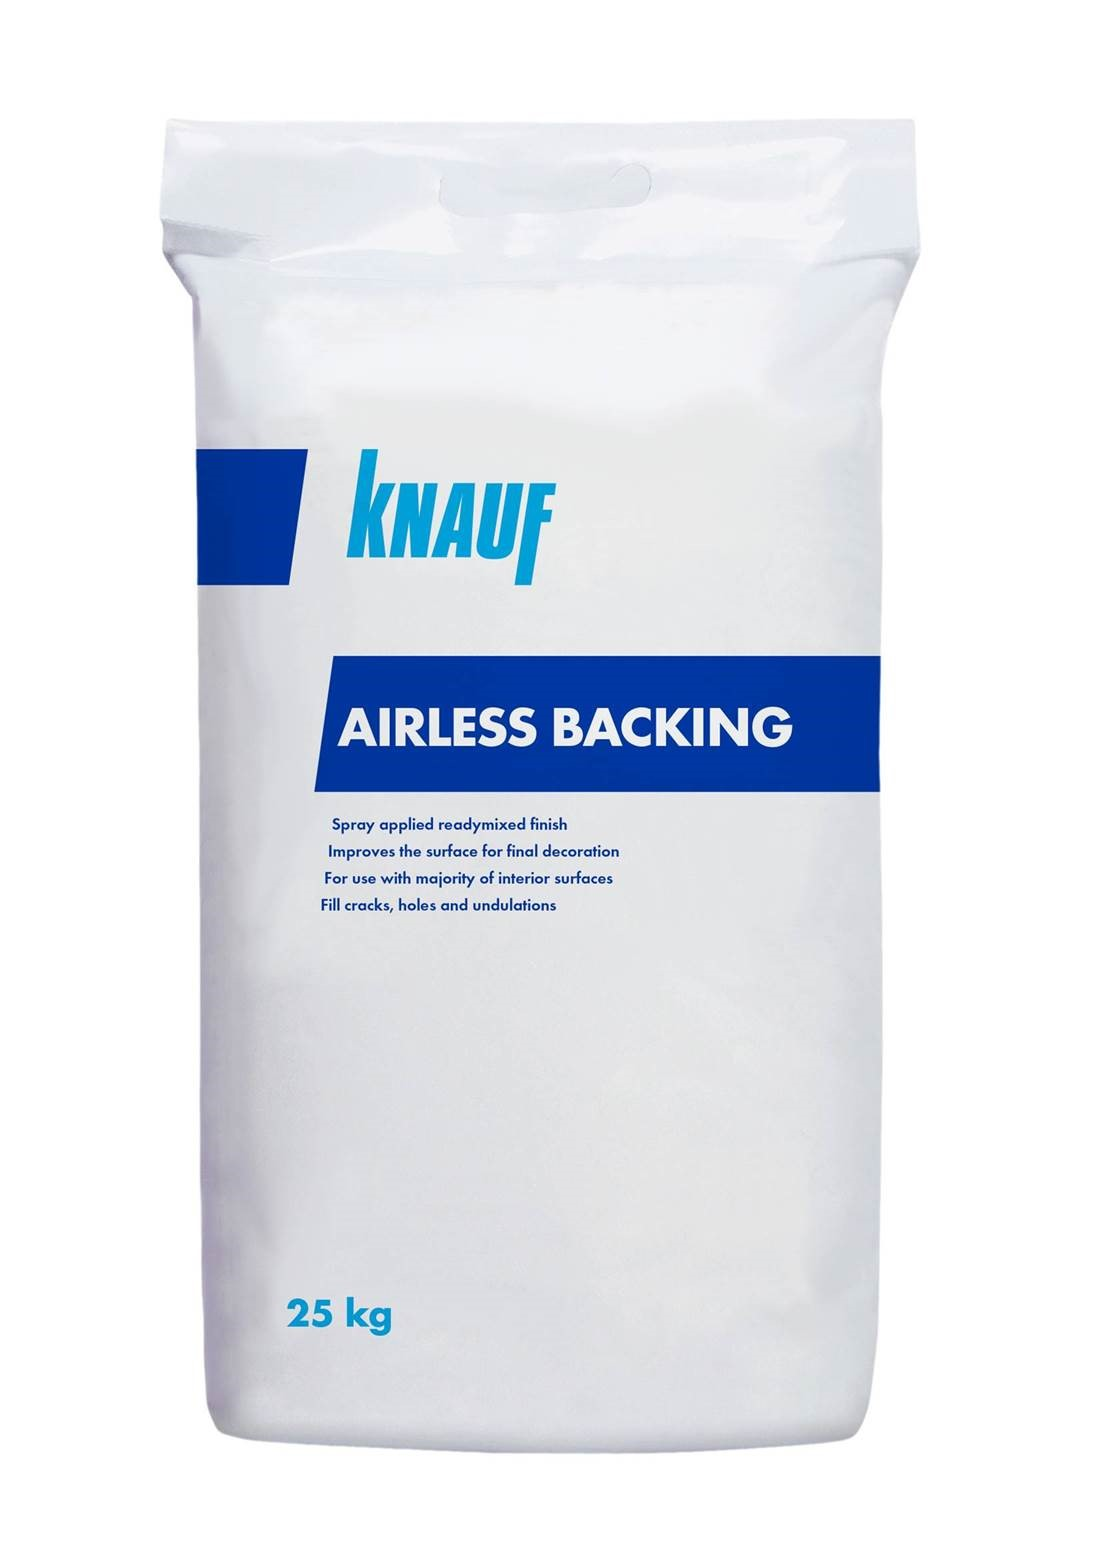 Airless Backing